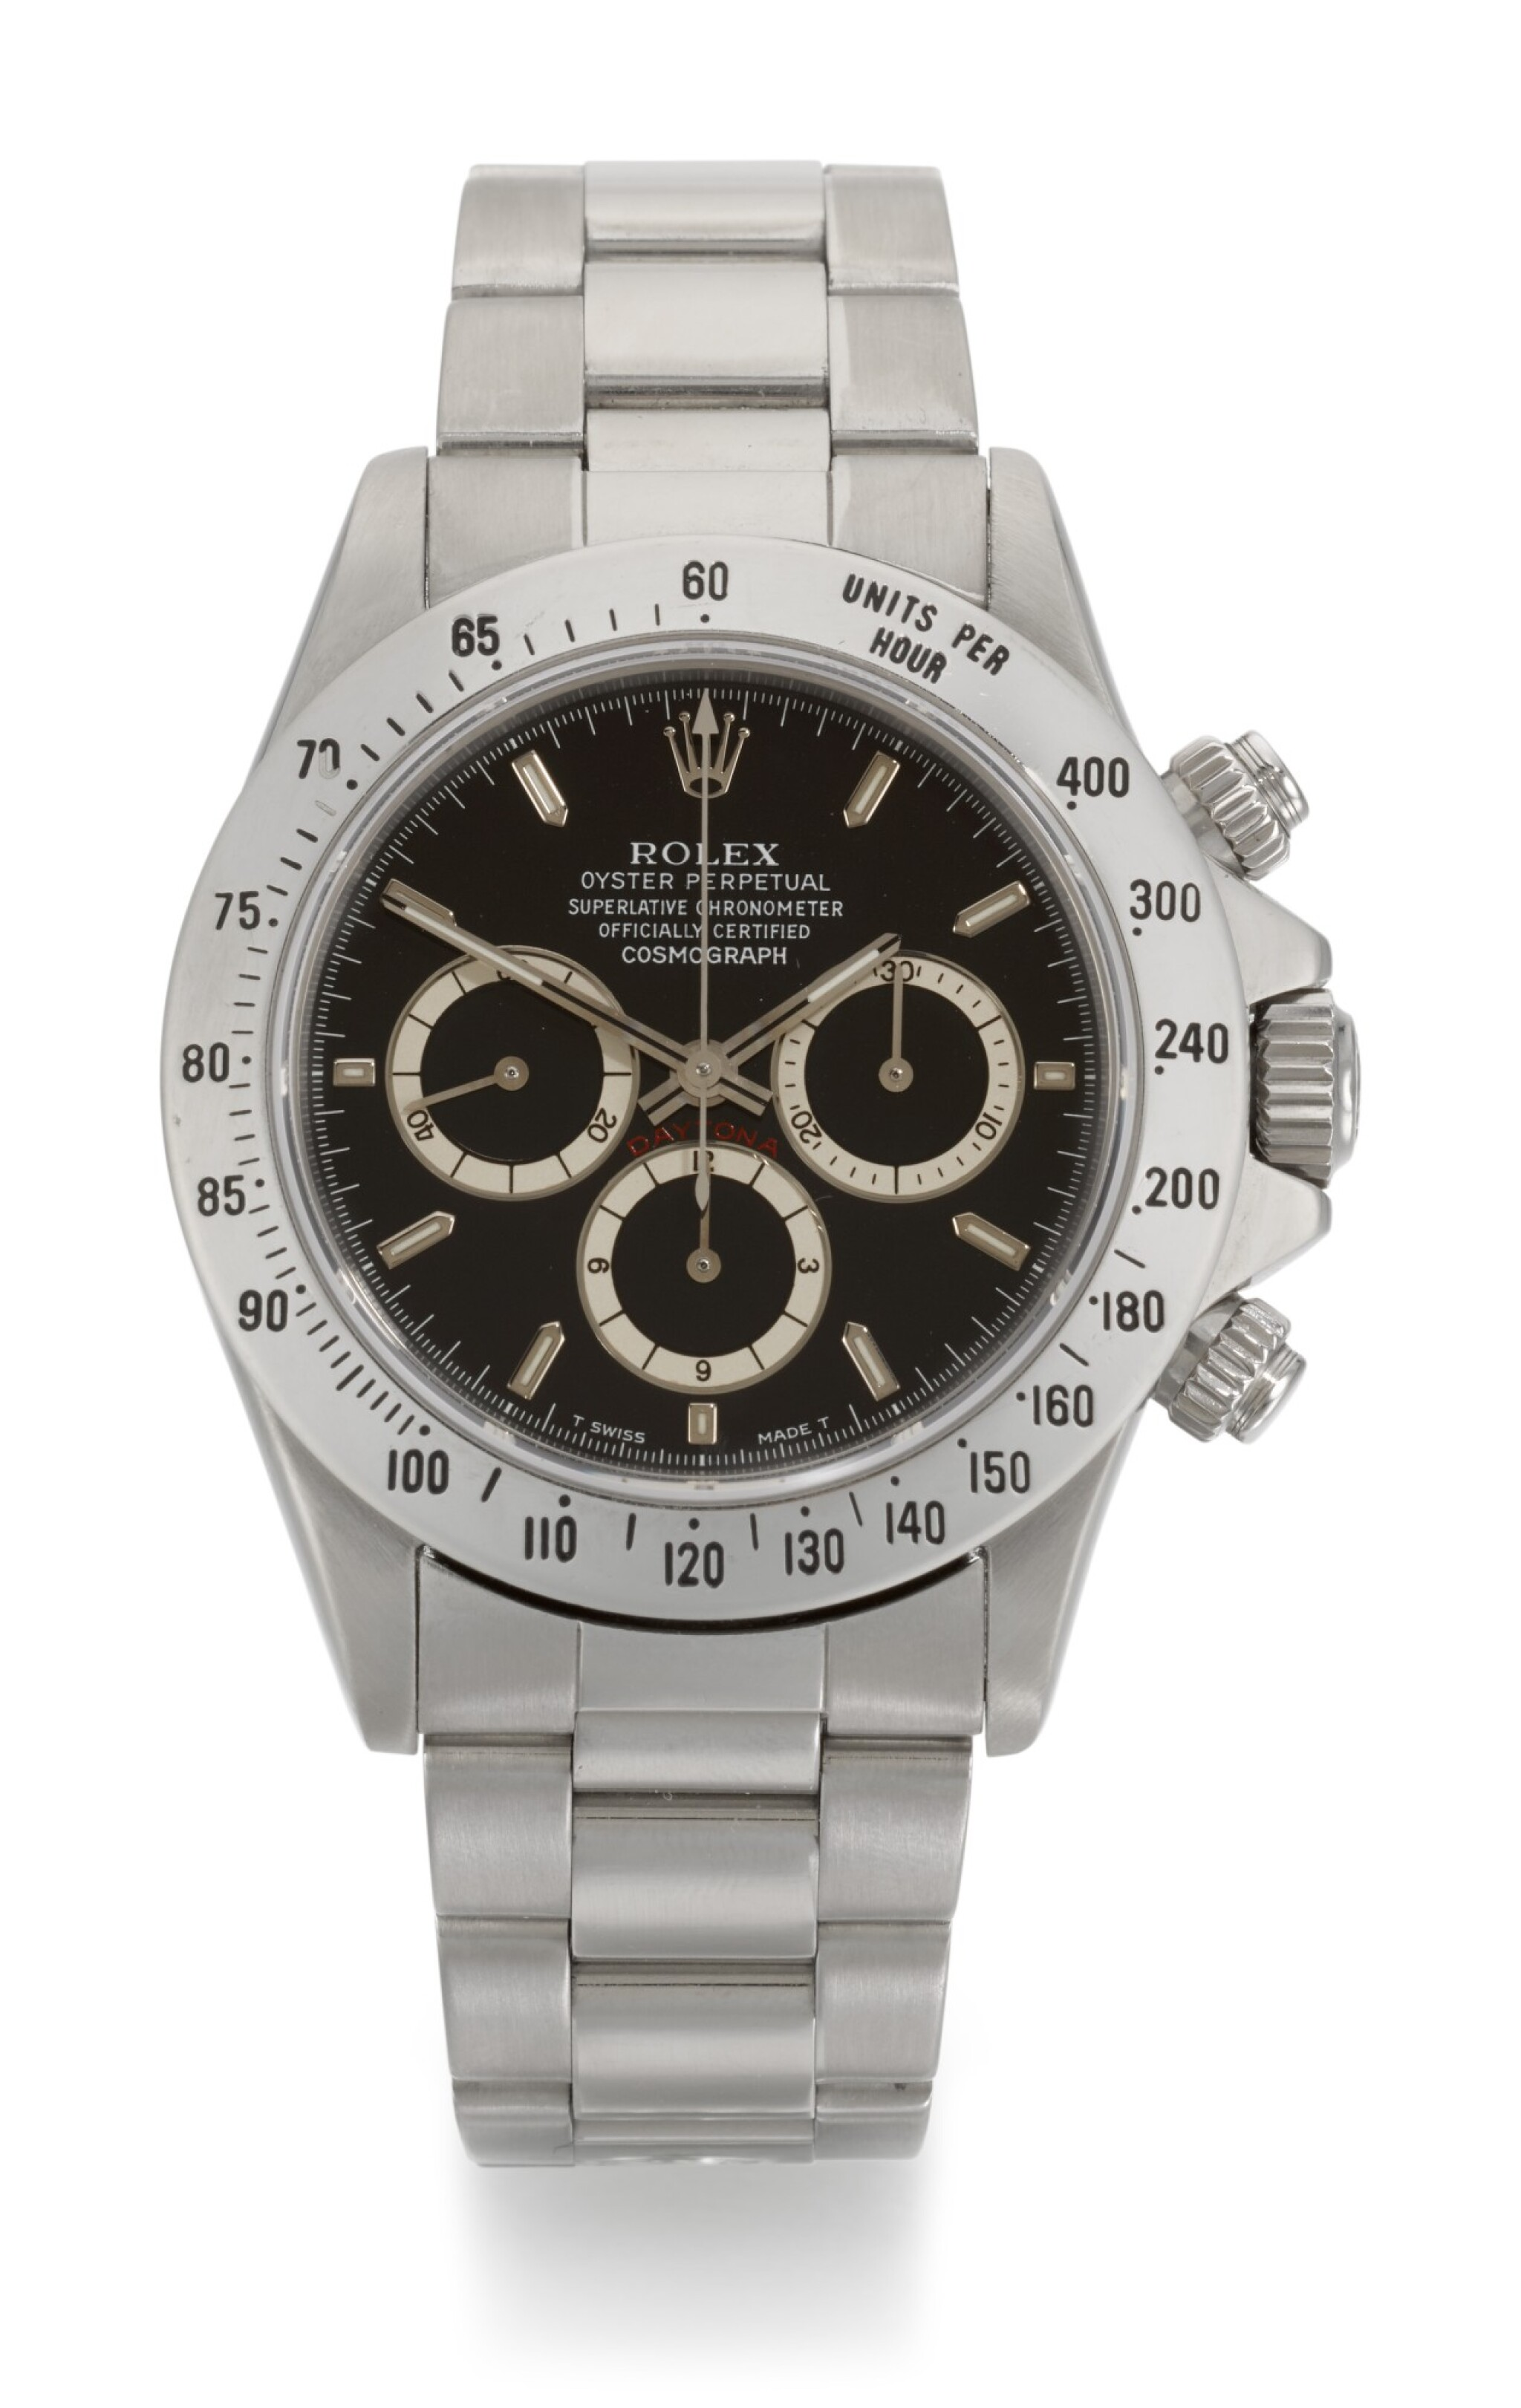 View full screen - View 1 of Lot 65. ROLEX   DAYTONA INVERTED SIX, REFERENCE 16520, STAINLESS STEEL CHRONOGRAPH WRISTWATCH WITH BRACELET, CIRCA 1991.